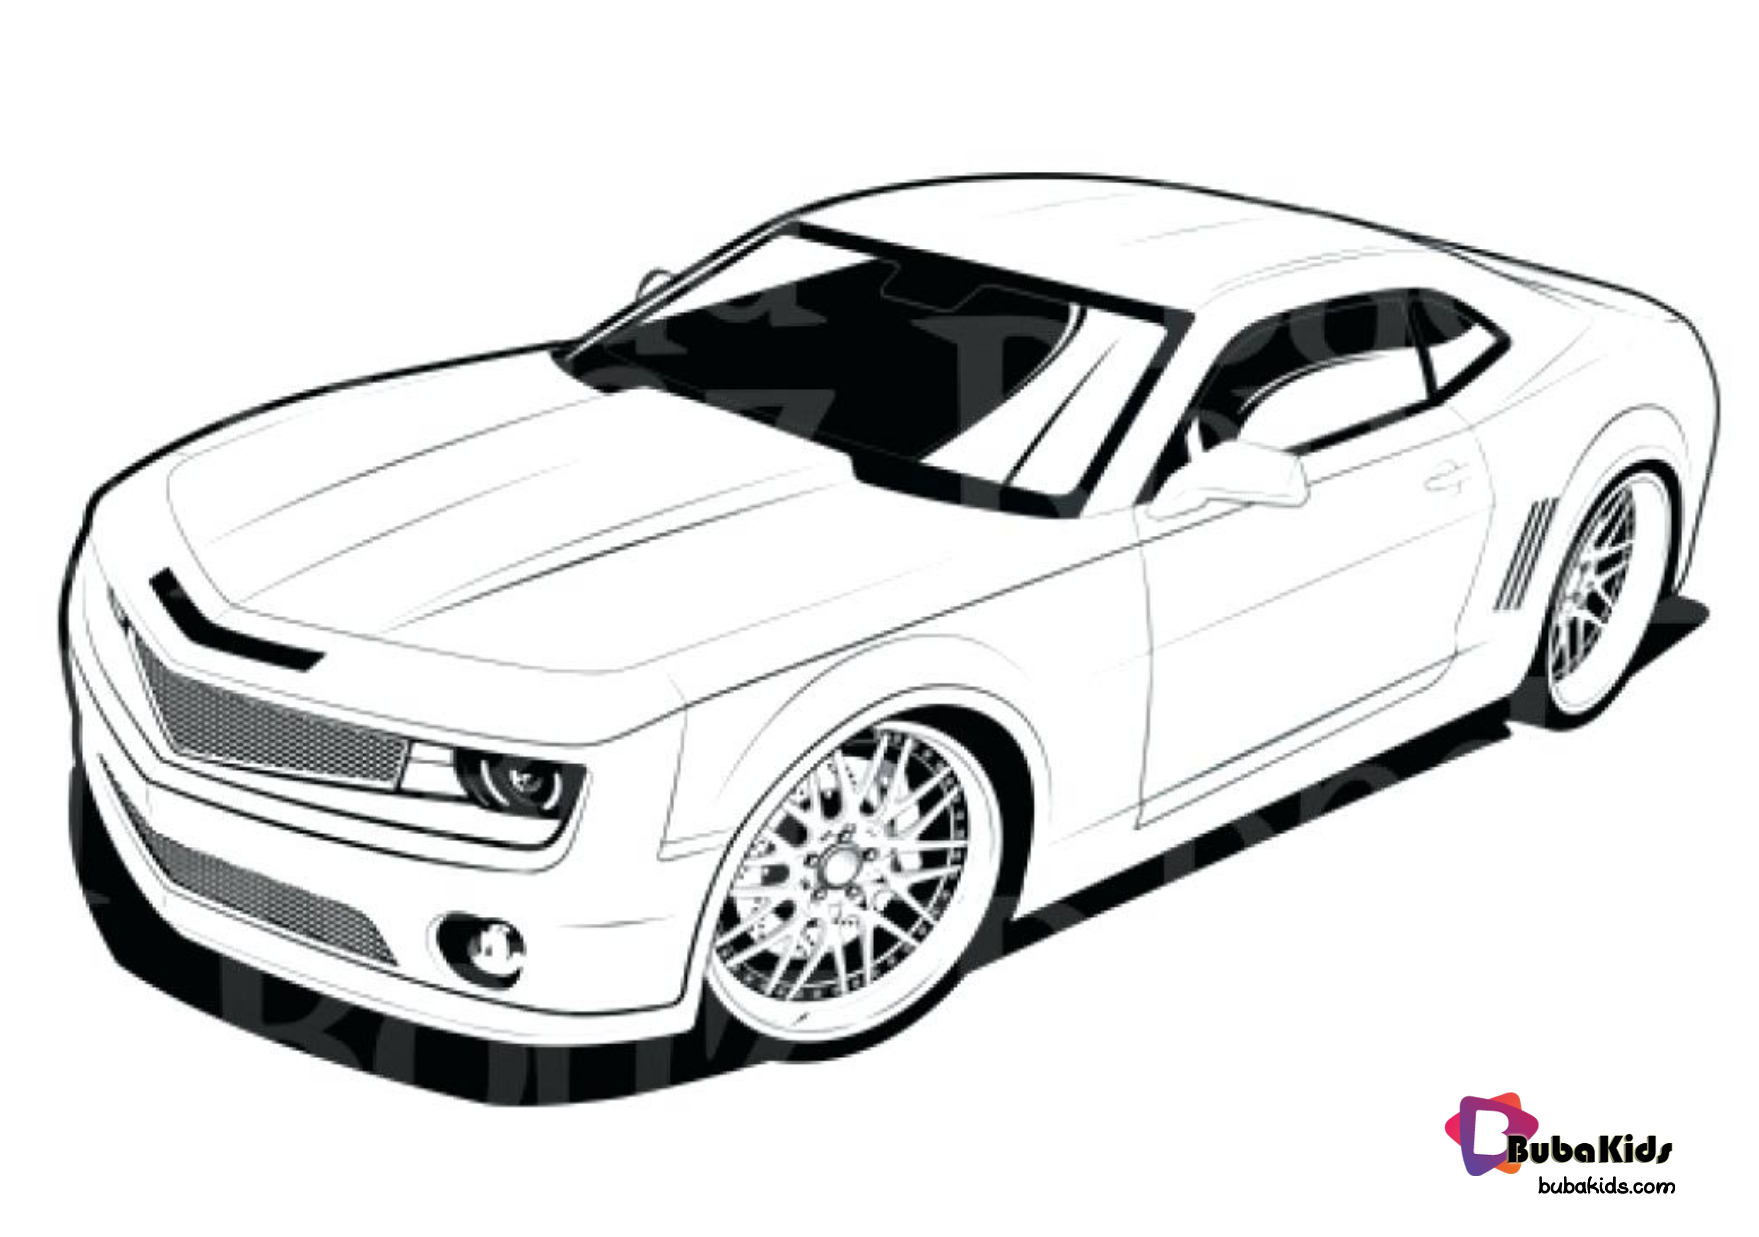 Chevrolet Camaro Coloring Page Collection Of Cartoon Coloring Pages For Teenage Printable That You Can Download And In 2020 Cars Coloring Pages Camaro Coloring Pages